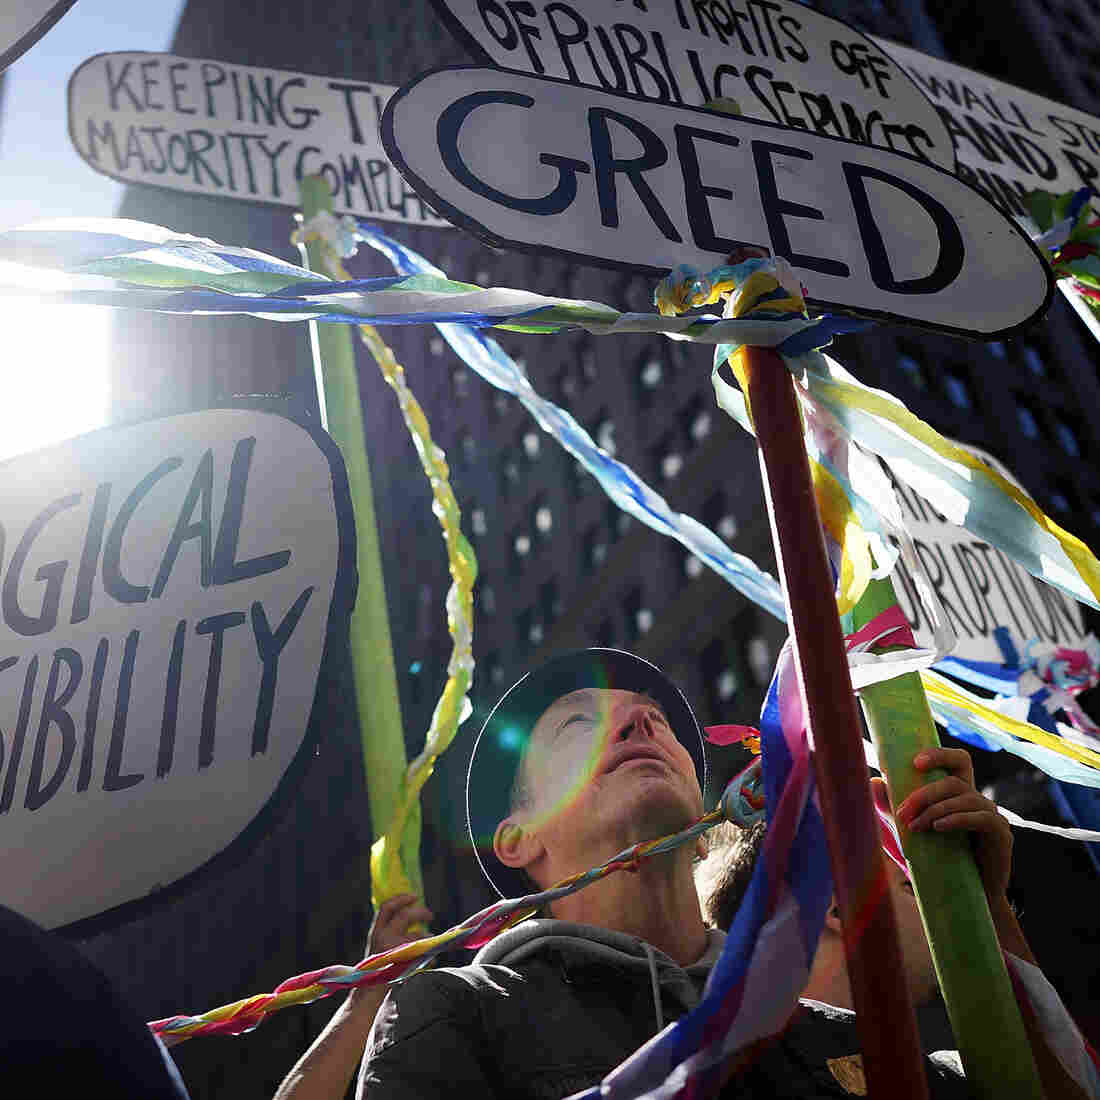 The Merits Of Income Inequality: What's The Right Amount?